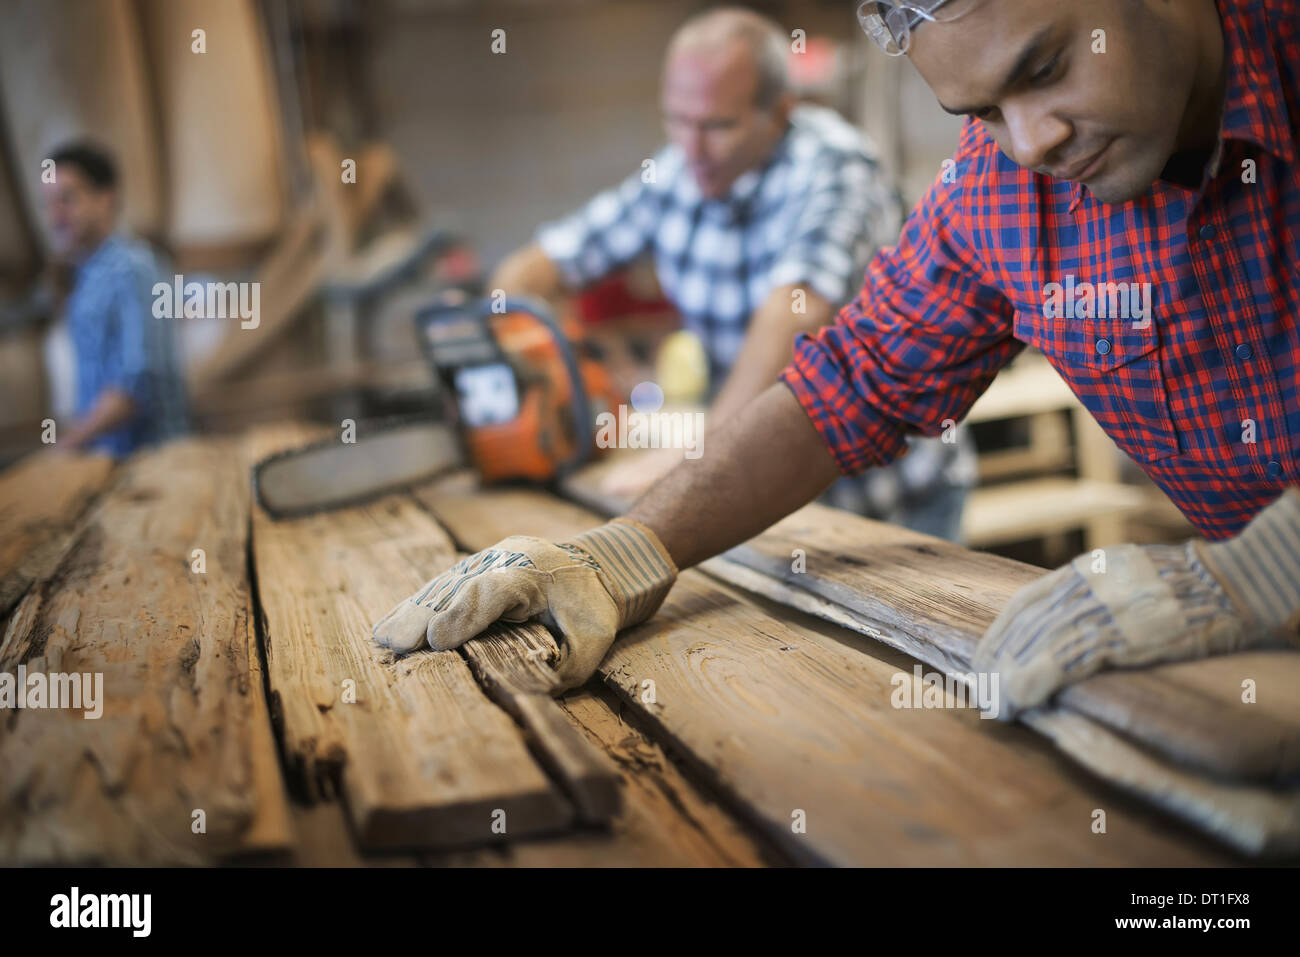 A reclaimed lumber workshop A group of people working A man measuring and checking planks of wood for re-use and recycling - Stock Image